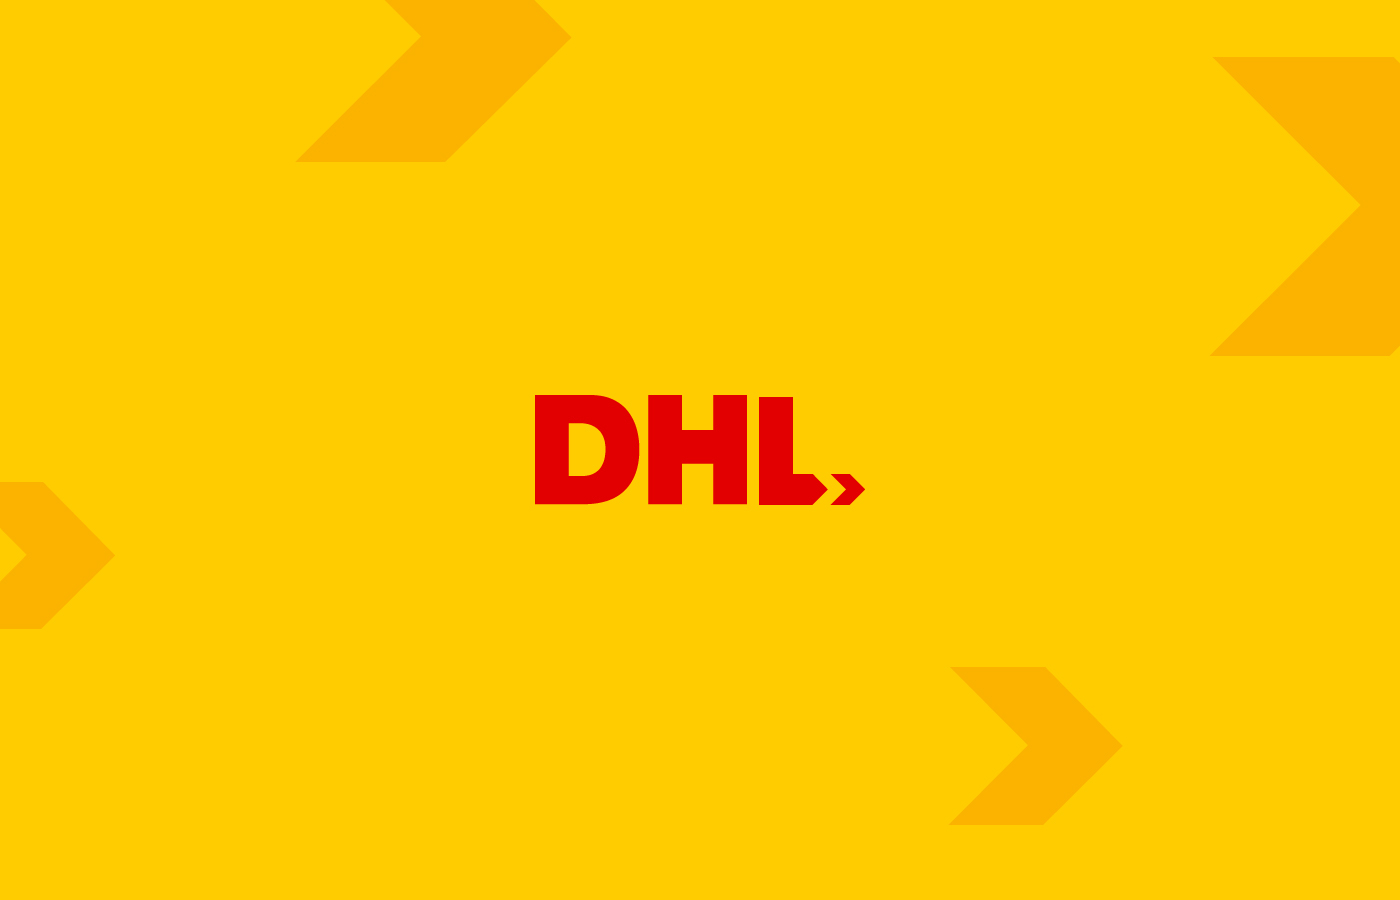 Dhl Visual Redesign Personal On Behance